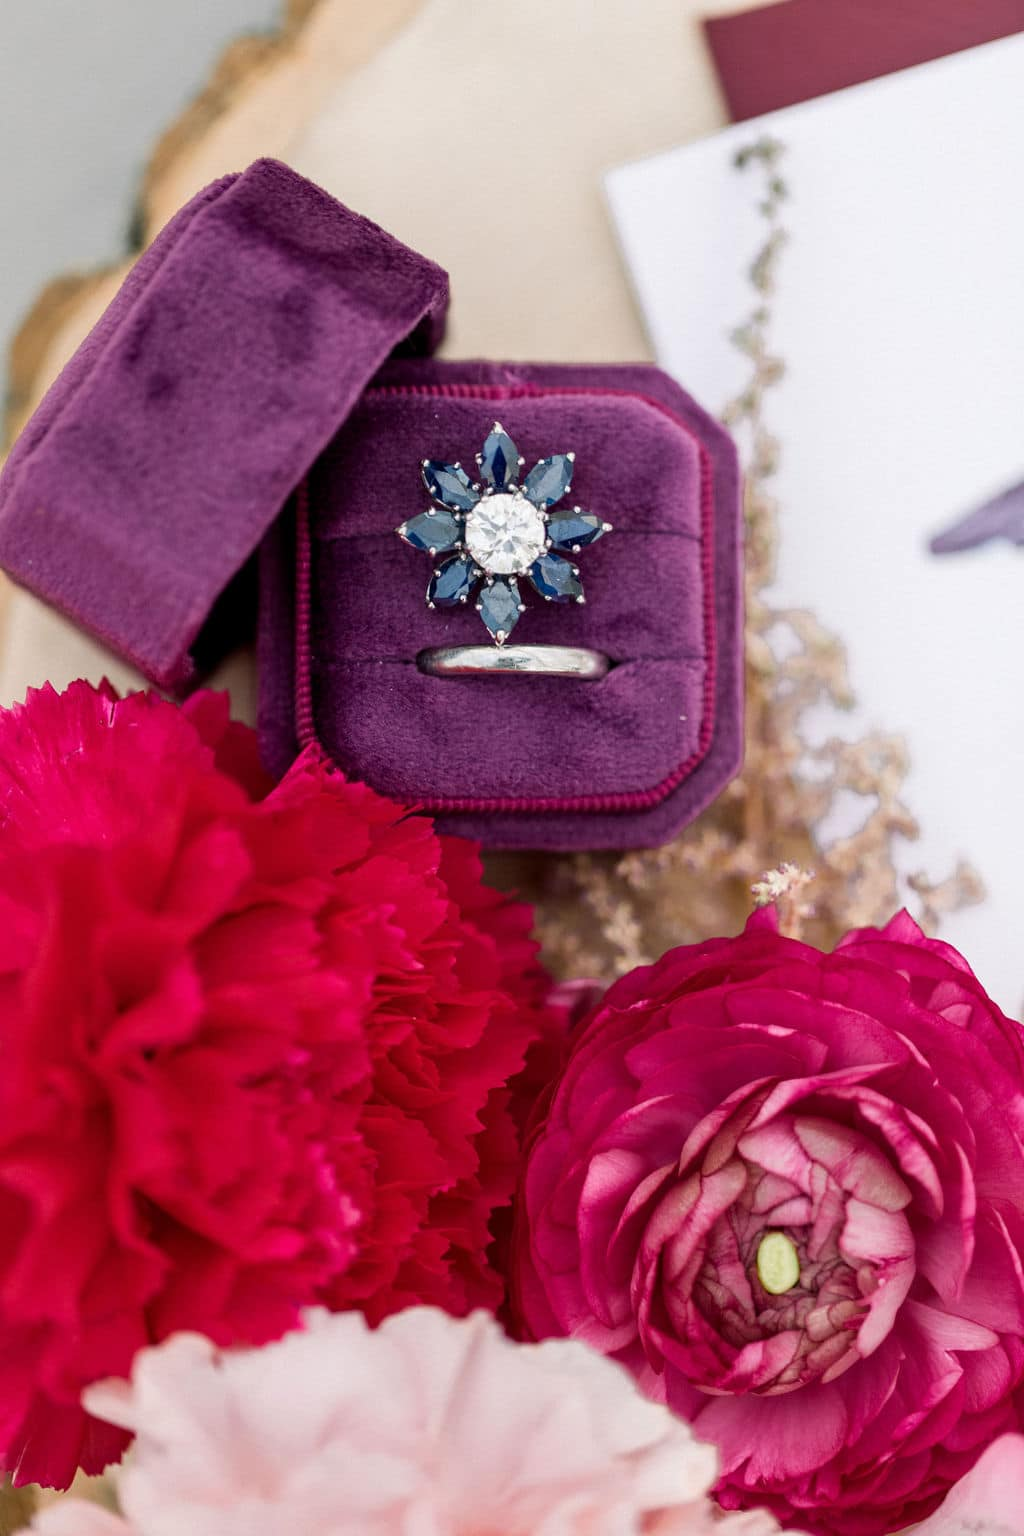 blue and white diamond ring in purple box surrounded by red and pink roses